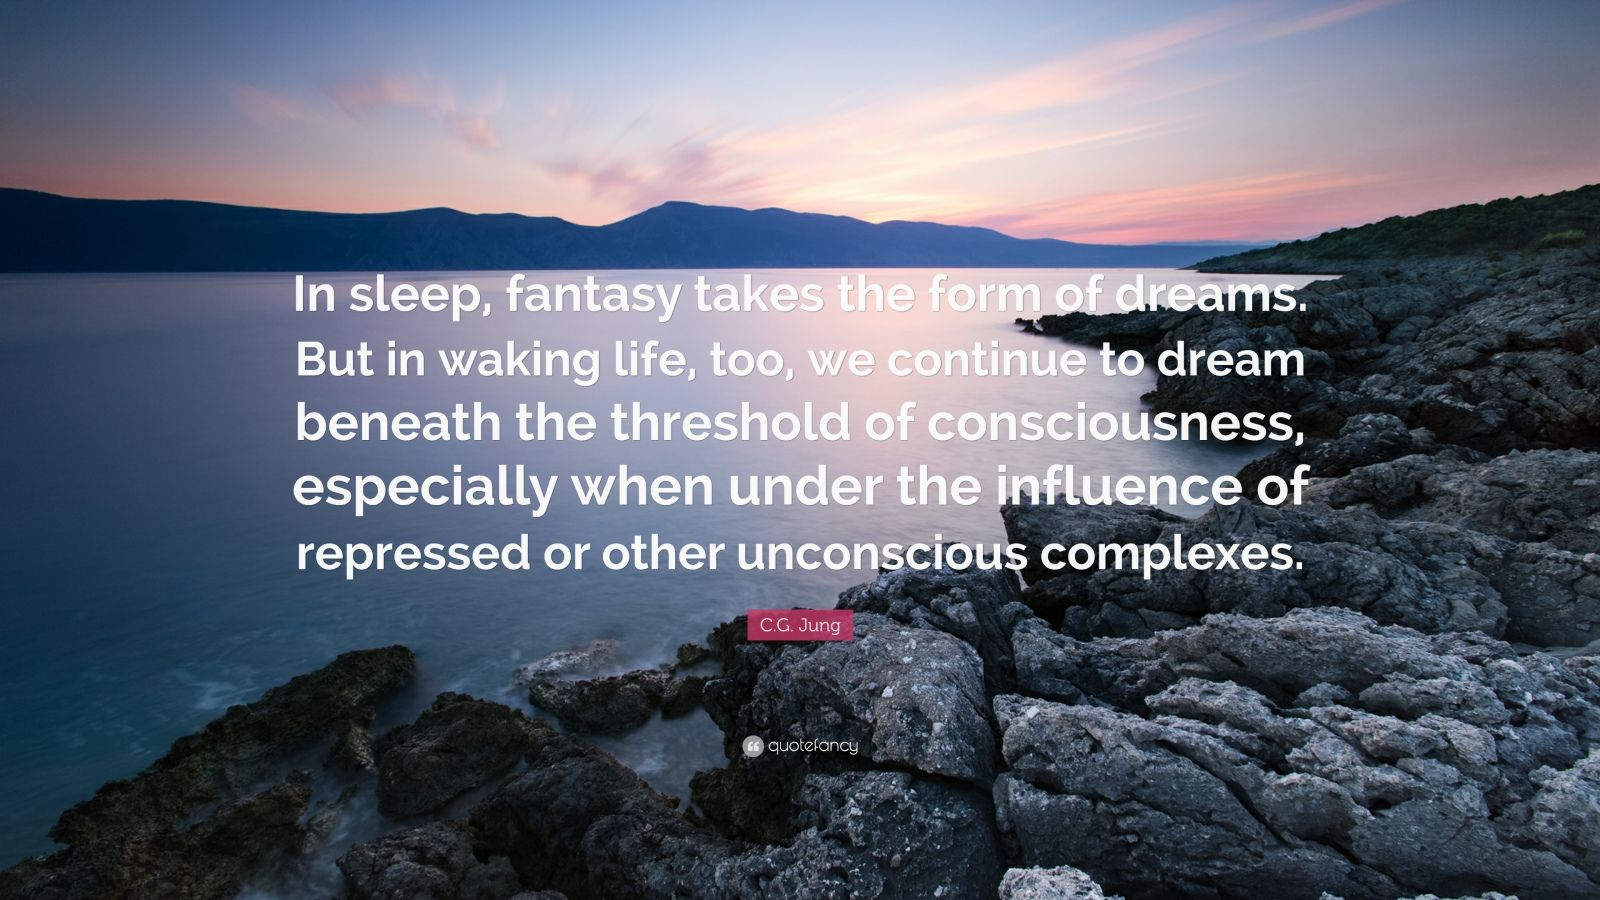 "C.G. Jung Quote: ""In sleep, fantasy takes the form of dreams. But in waking life, too, we continue to dream beneath the threshold of consciousness, especially when under the influence of repressed or other unconscious complexes."""